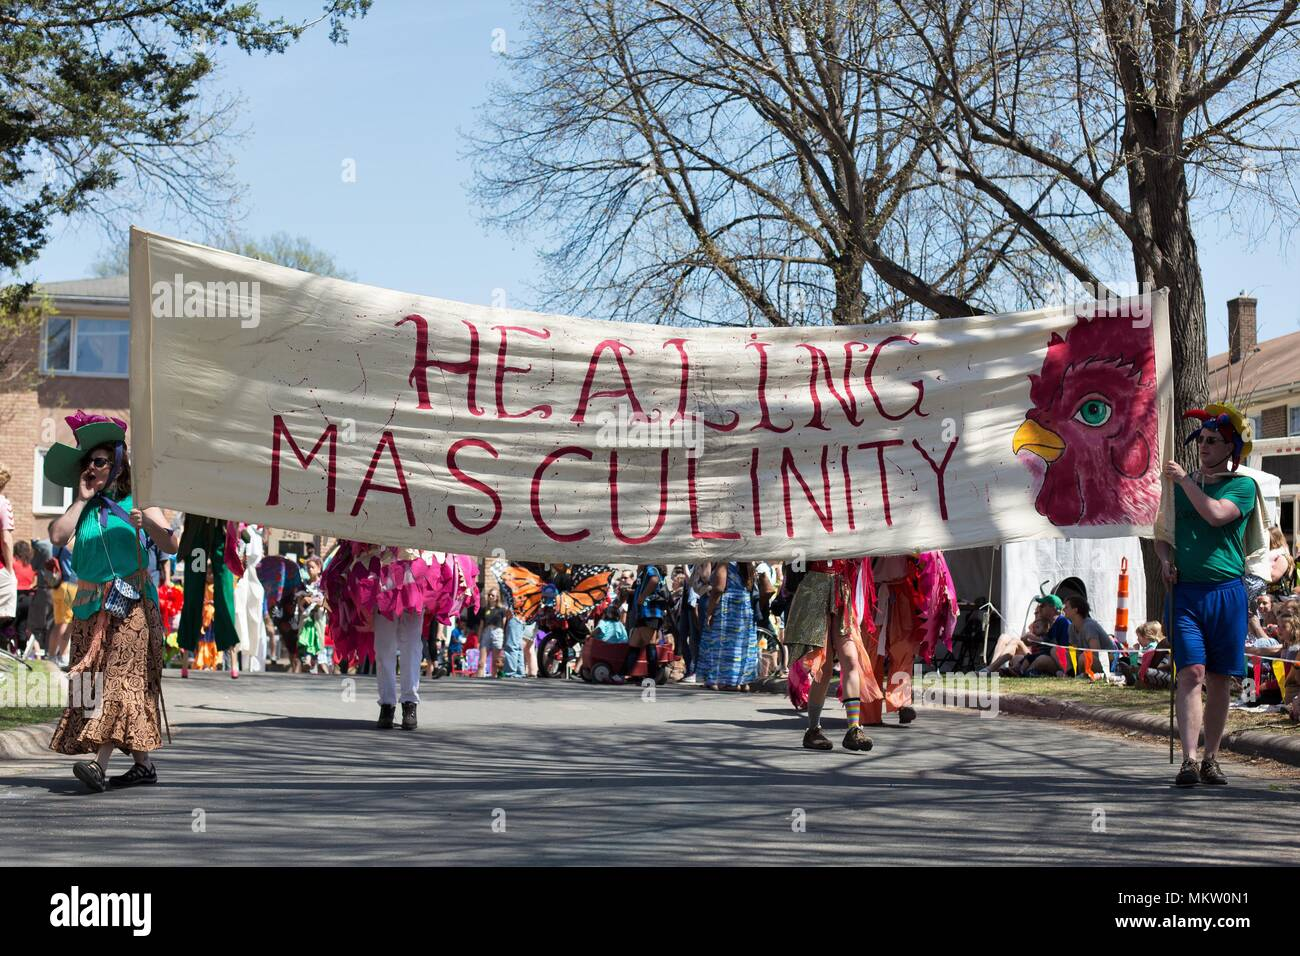 People holding a banner that reads 'Healing Masculinity' at the May Day parade and festival in Minneapolis, Minnesota, USA. - Stock Image